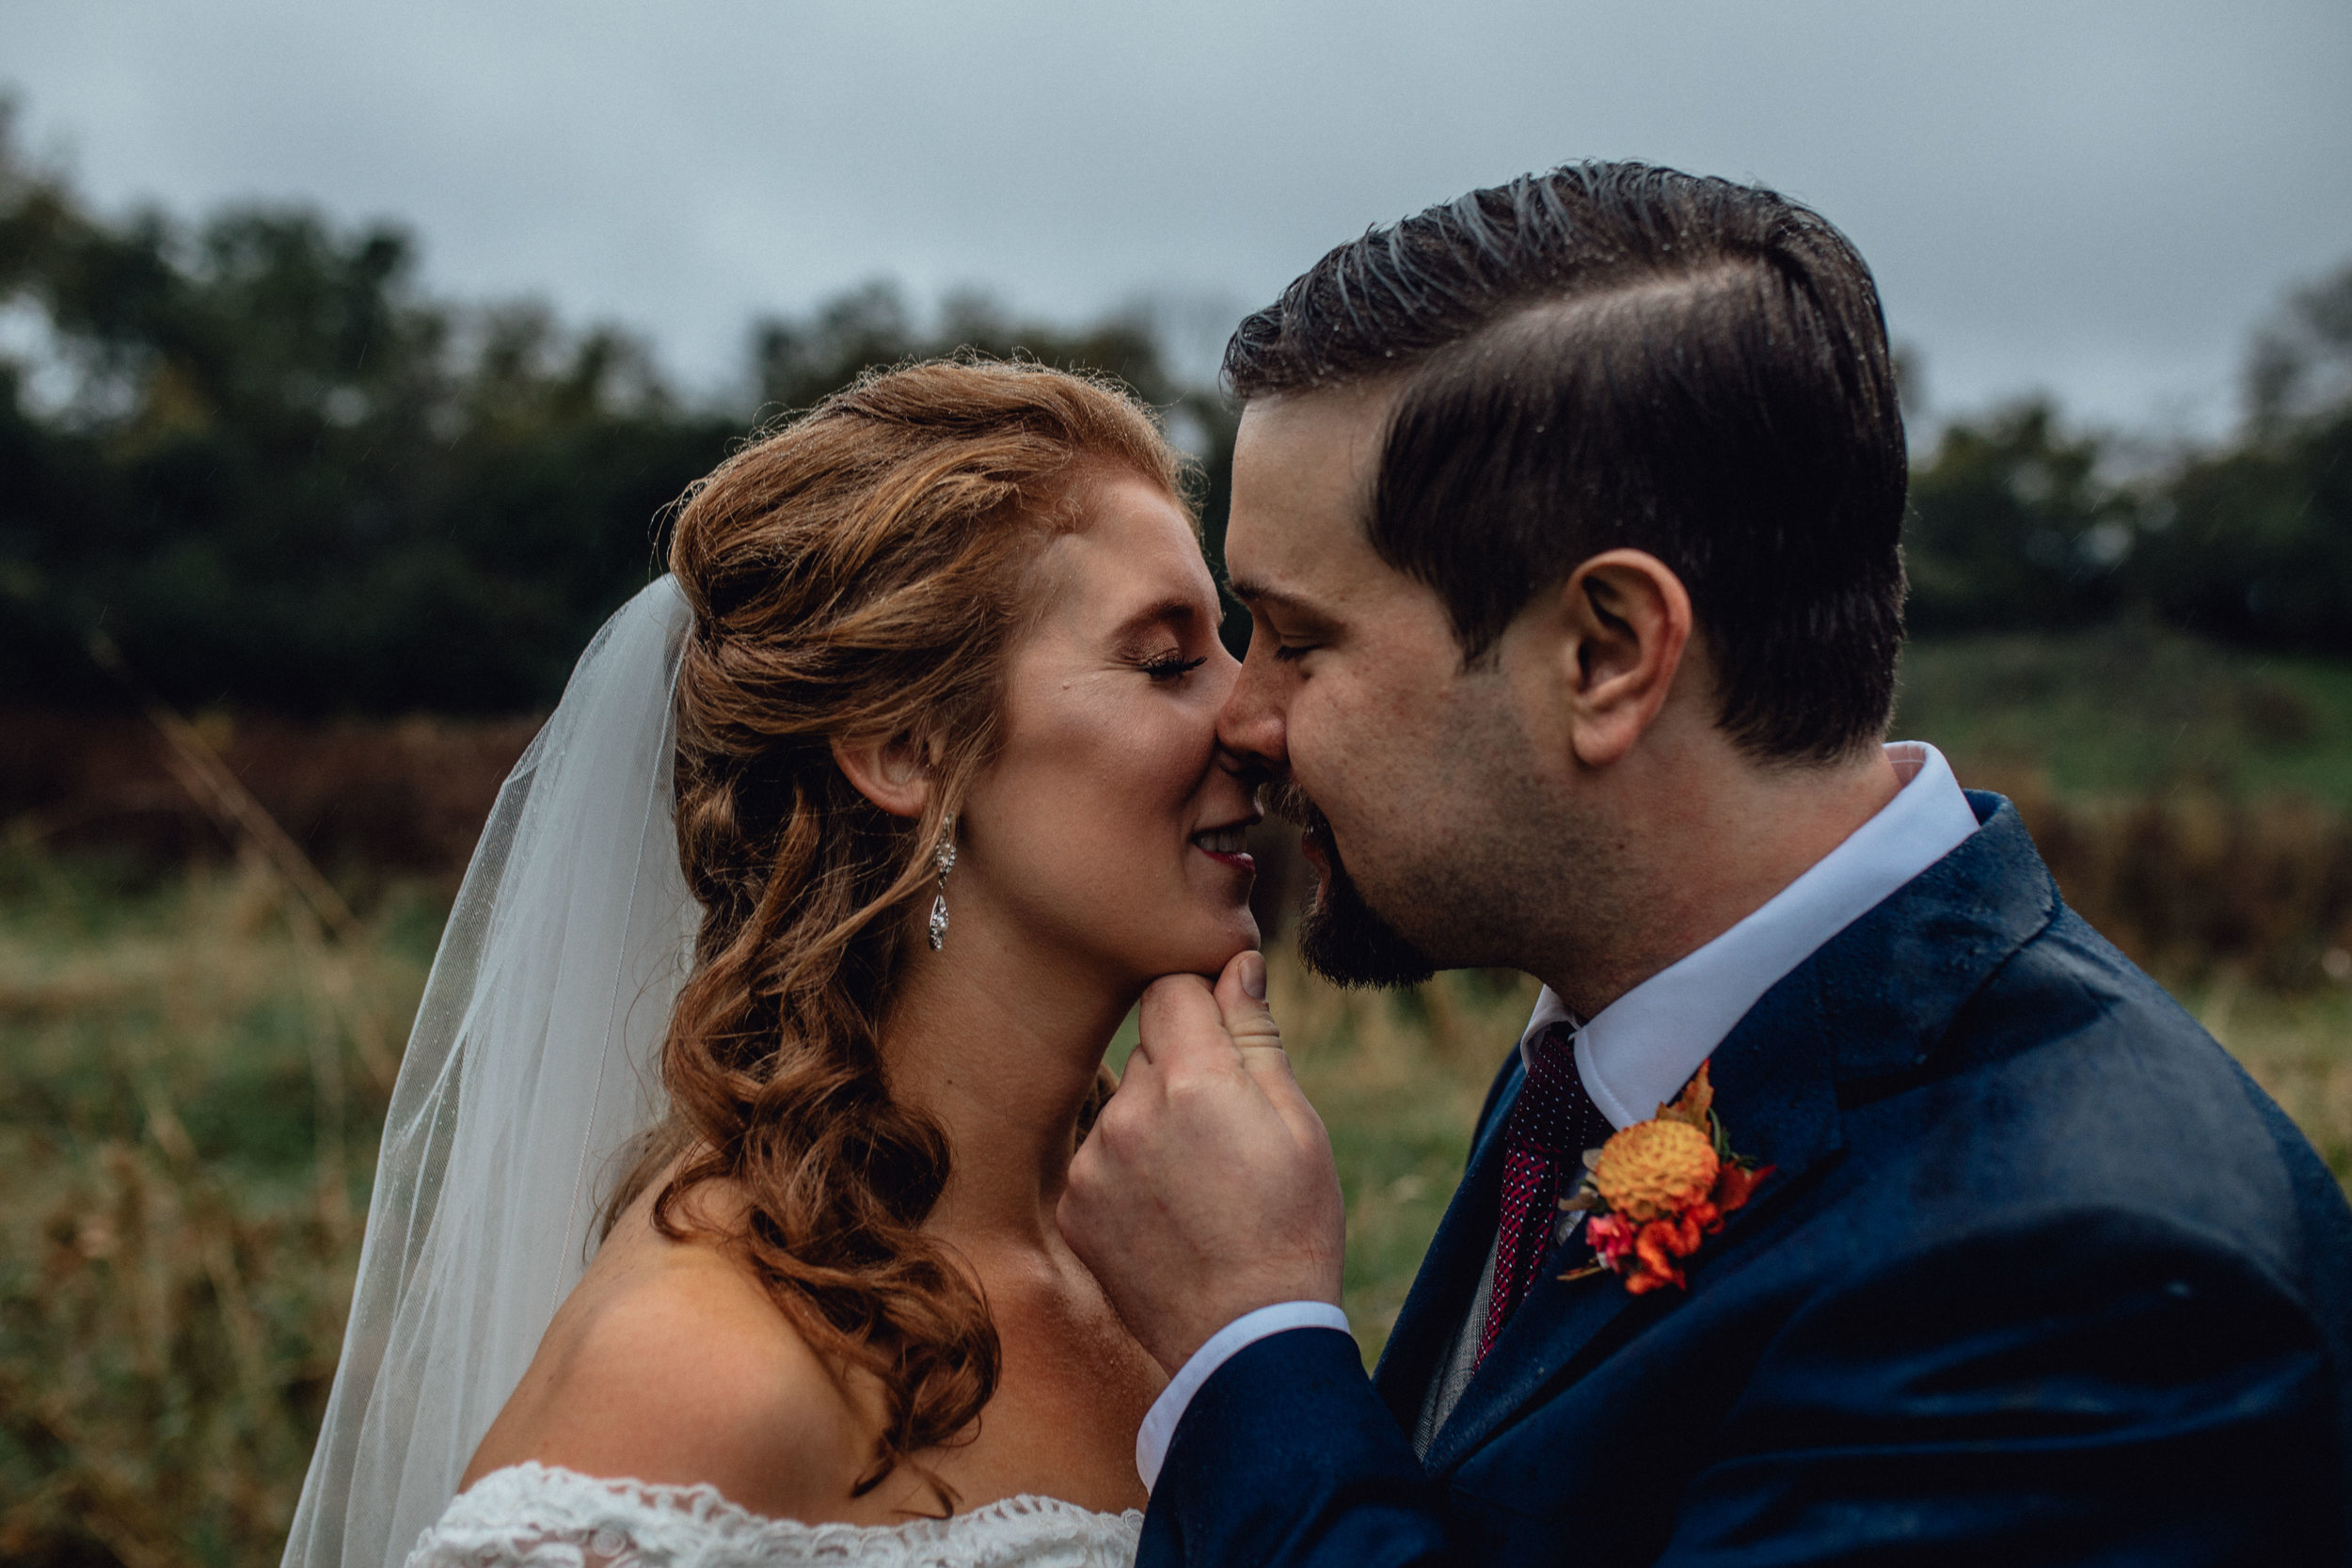 bride-and-groom-kiss-in-moody-field-portrait-at-rustic-manor-1848.jpg